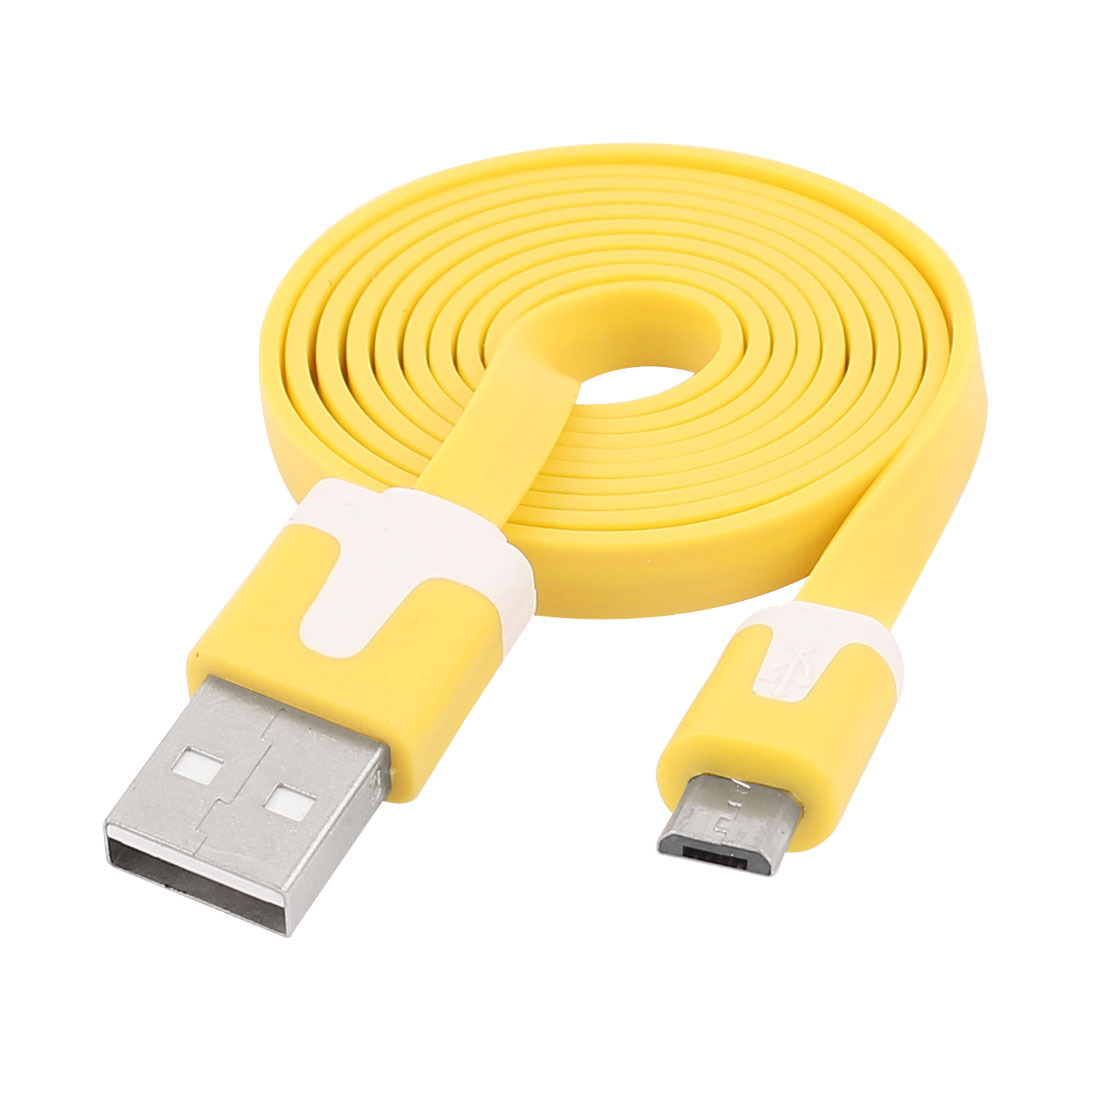 1M USB 2.0 Type A Male to Micro 5 Pin USB Male M/M PC Data Changer Cable Line Yellow